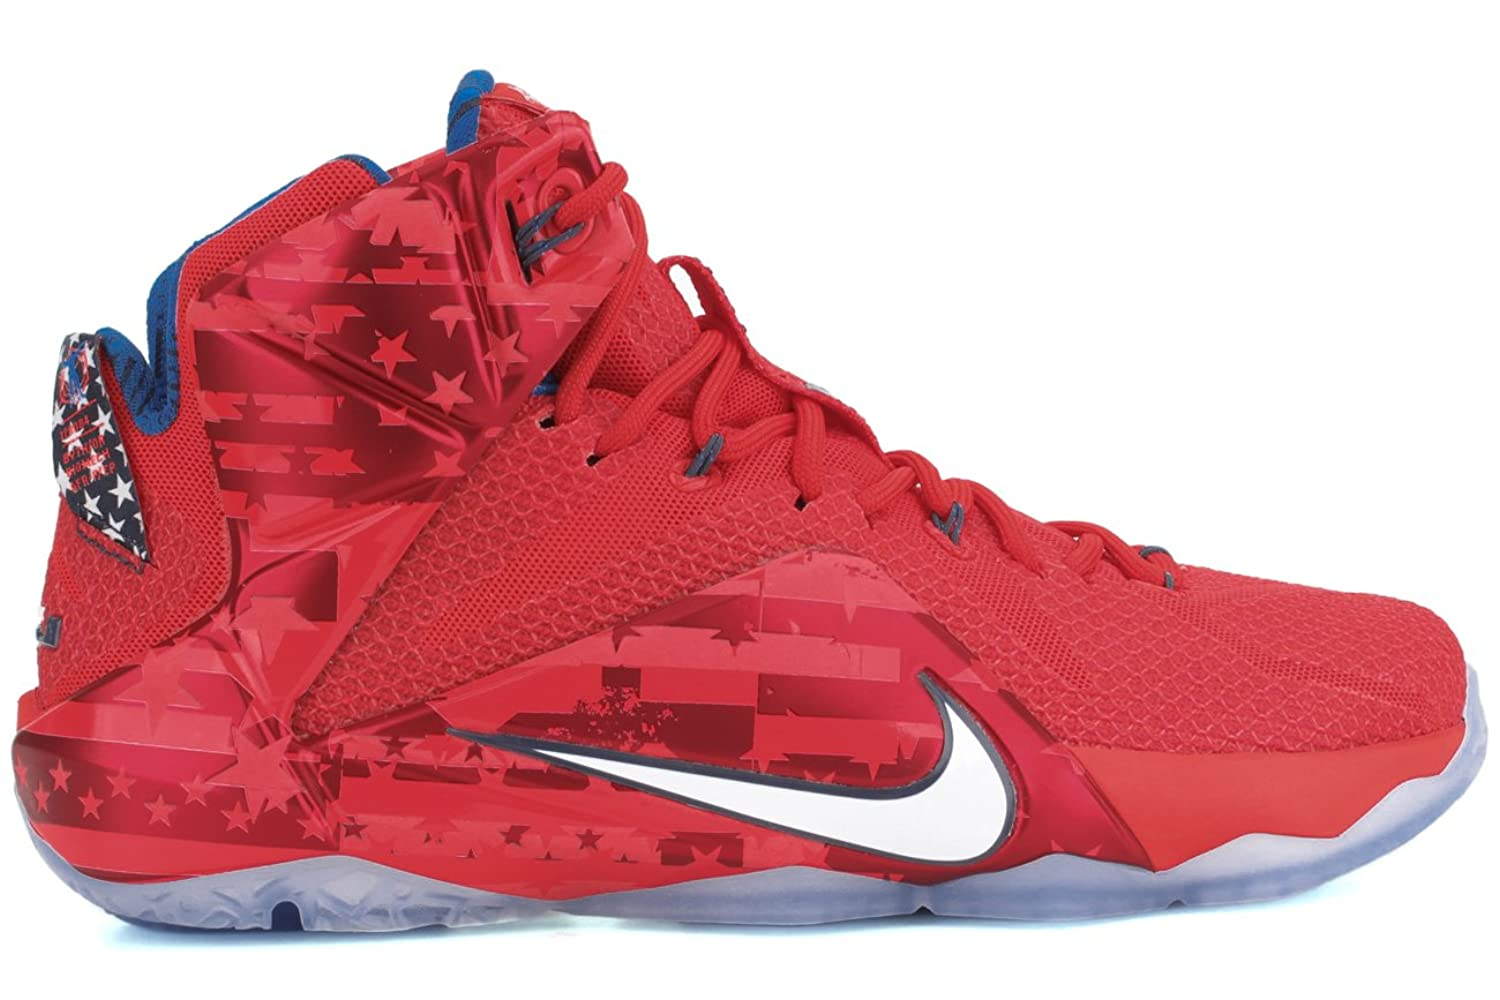 Nike LeBron 12 XII USA 4th of July Collection Light Crimson Navy White